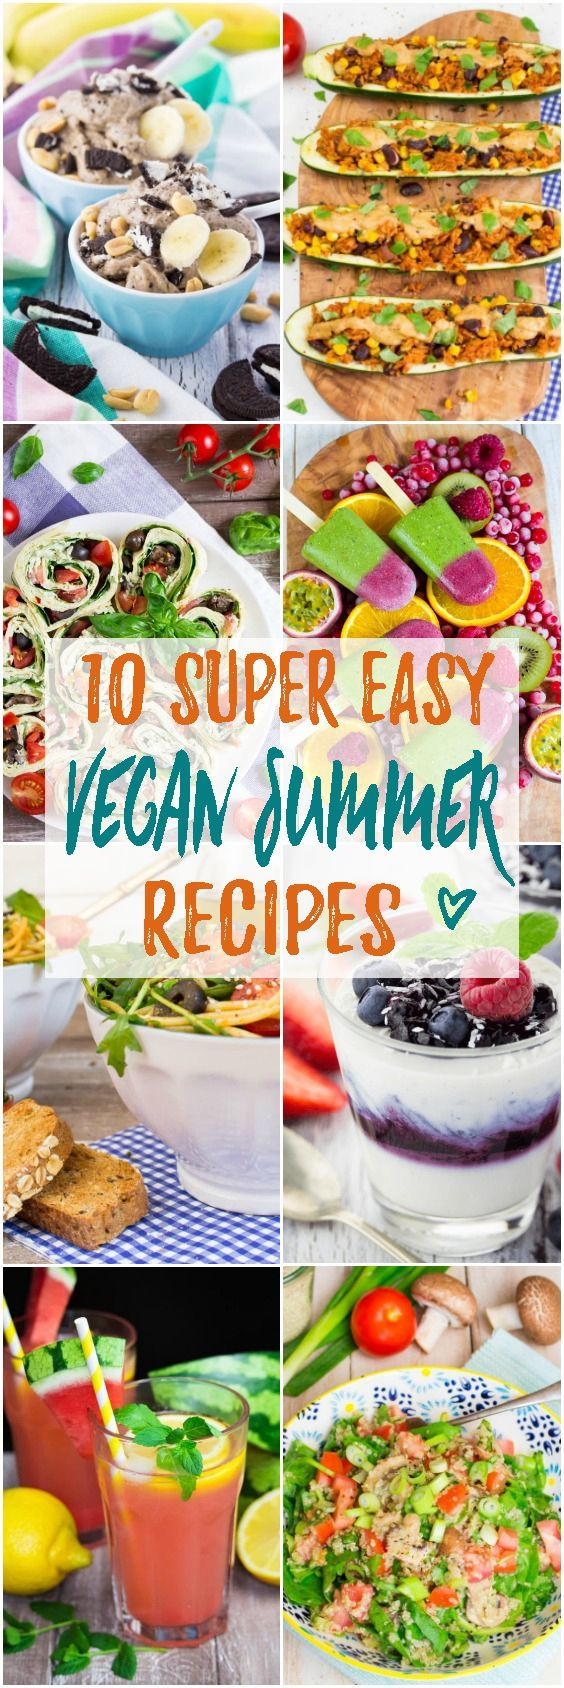 Summer is finally here and to celebrate it I put together this list of 10 delicious vegan summer recipes! Vegan ice cream, vegan salads, wraps, and so much more!